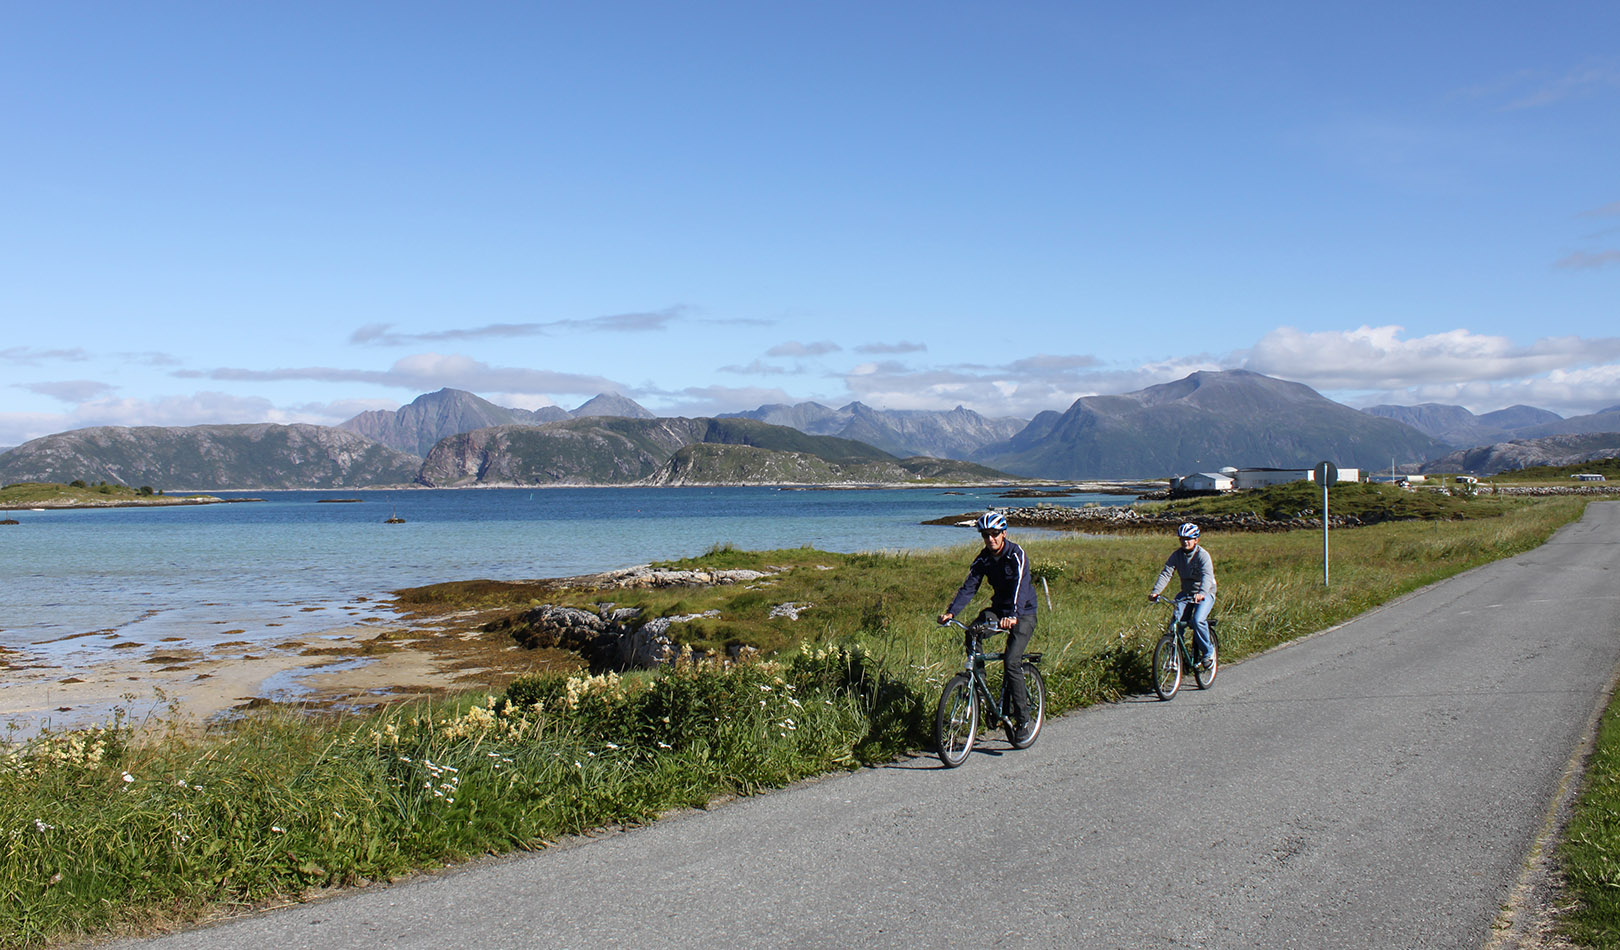 Two cyclists on a road outside Tromsø with ocean and mountains.